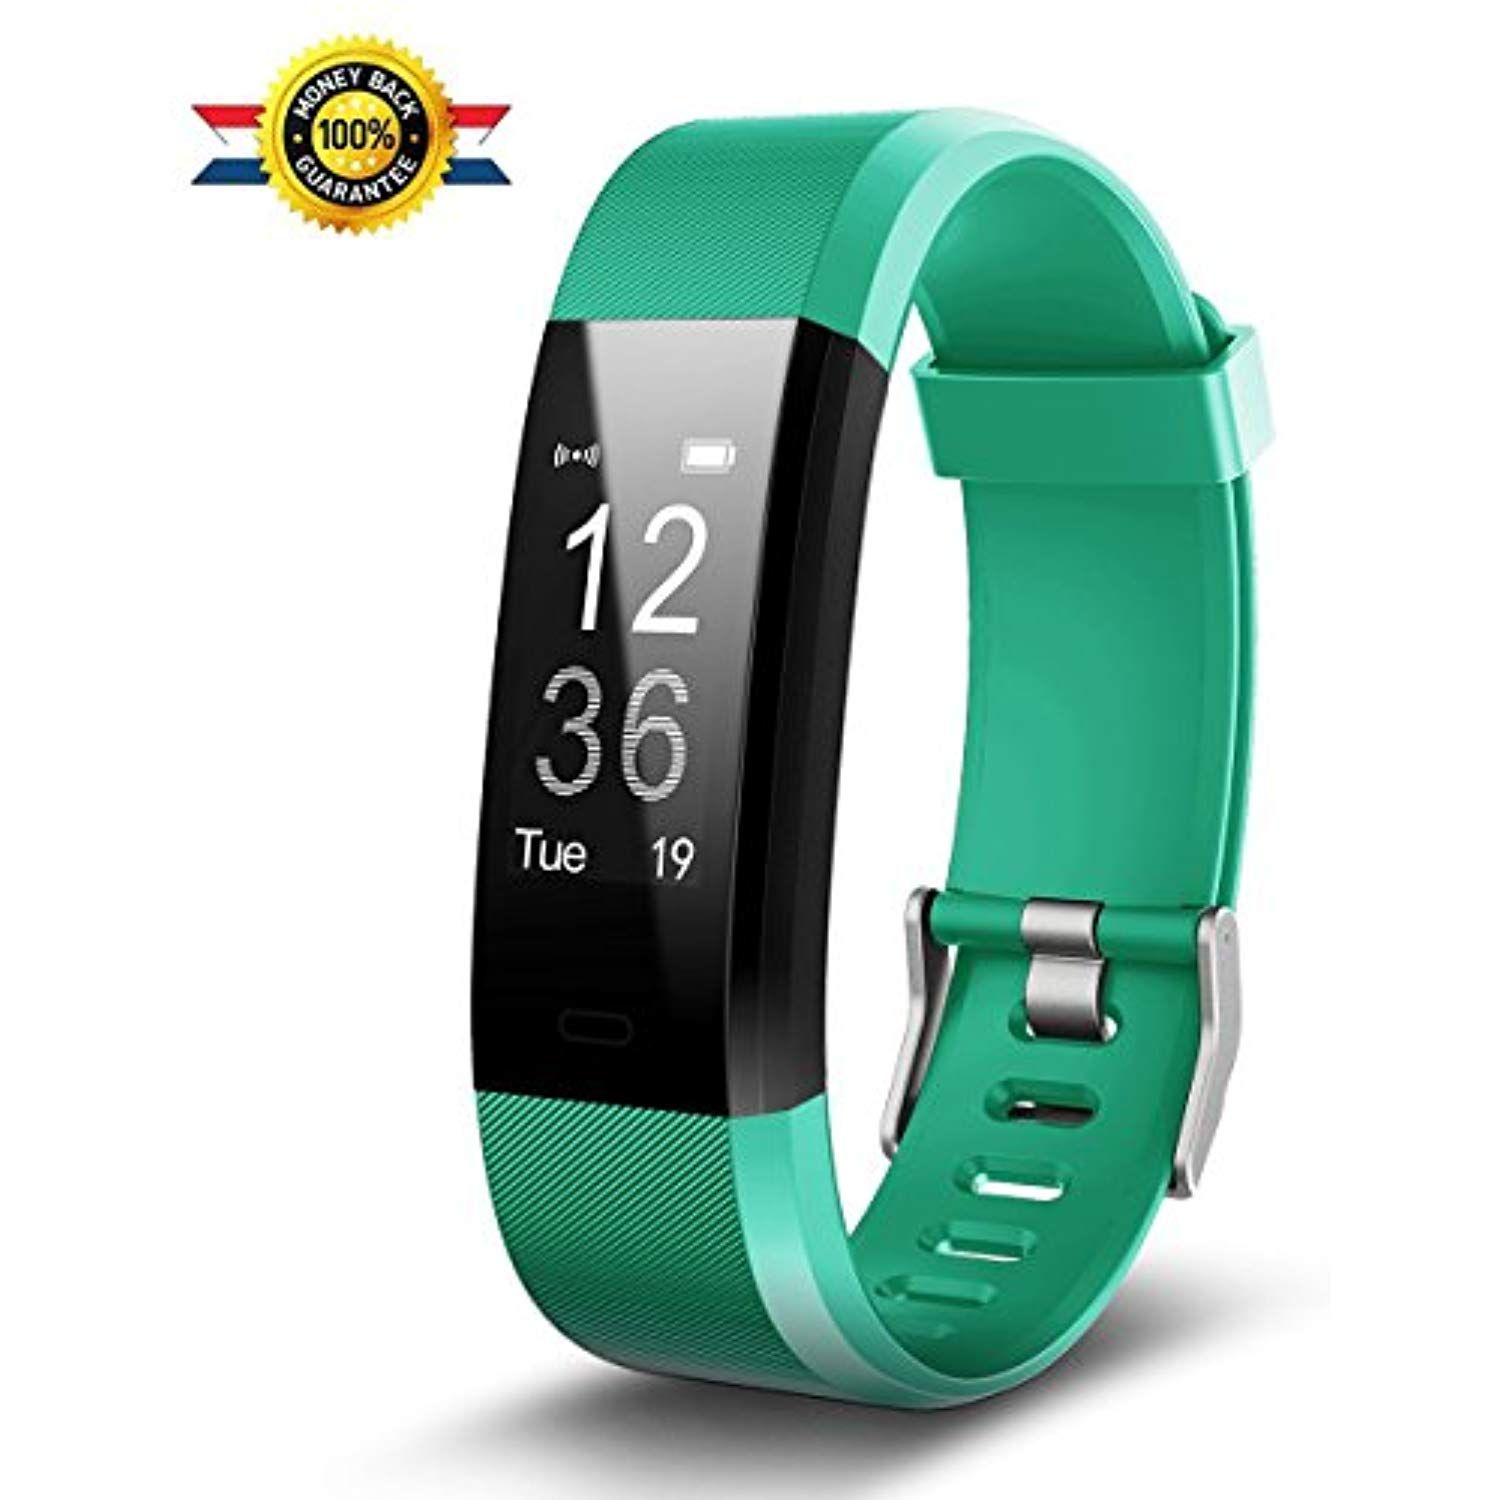 Arbily 〠Today Promotion】 Fitness Tracker HR, Activity